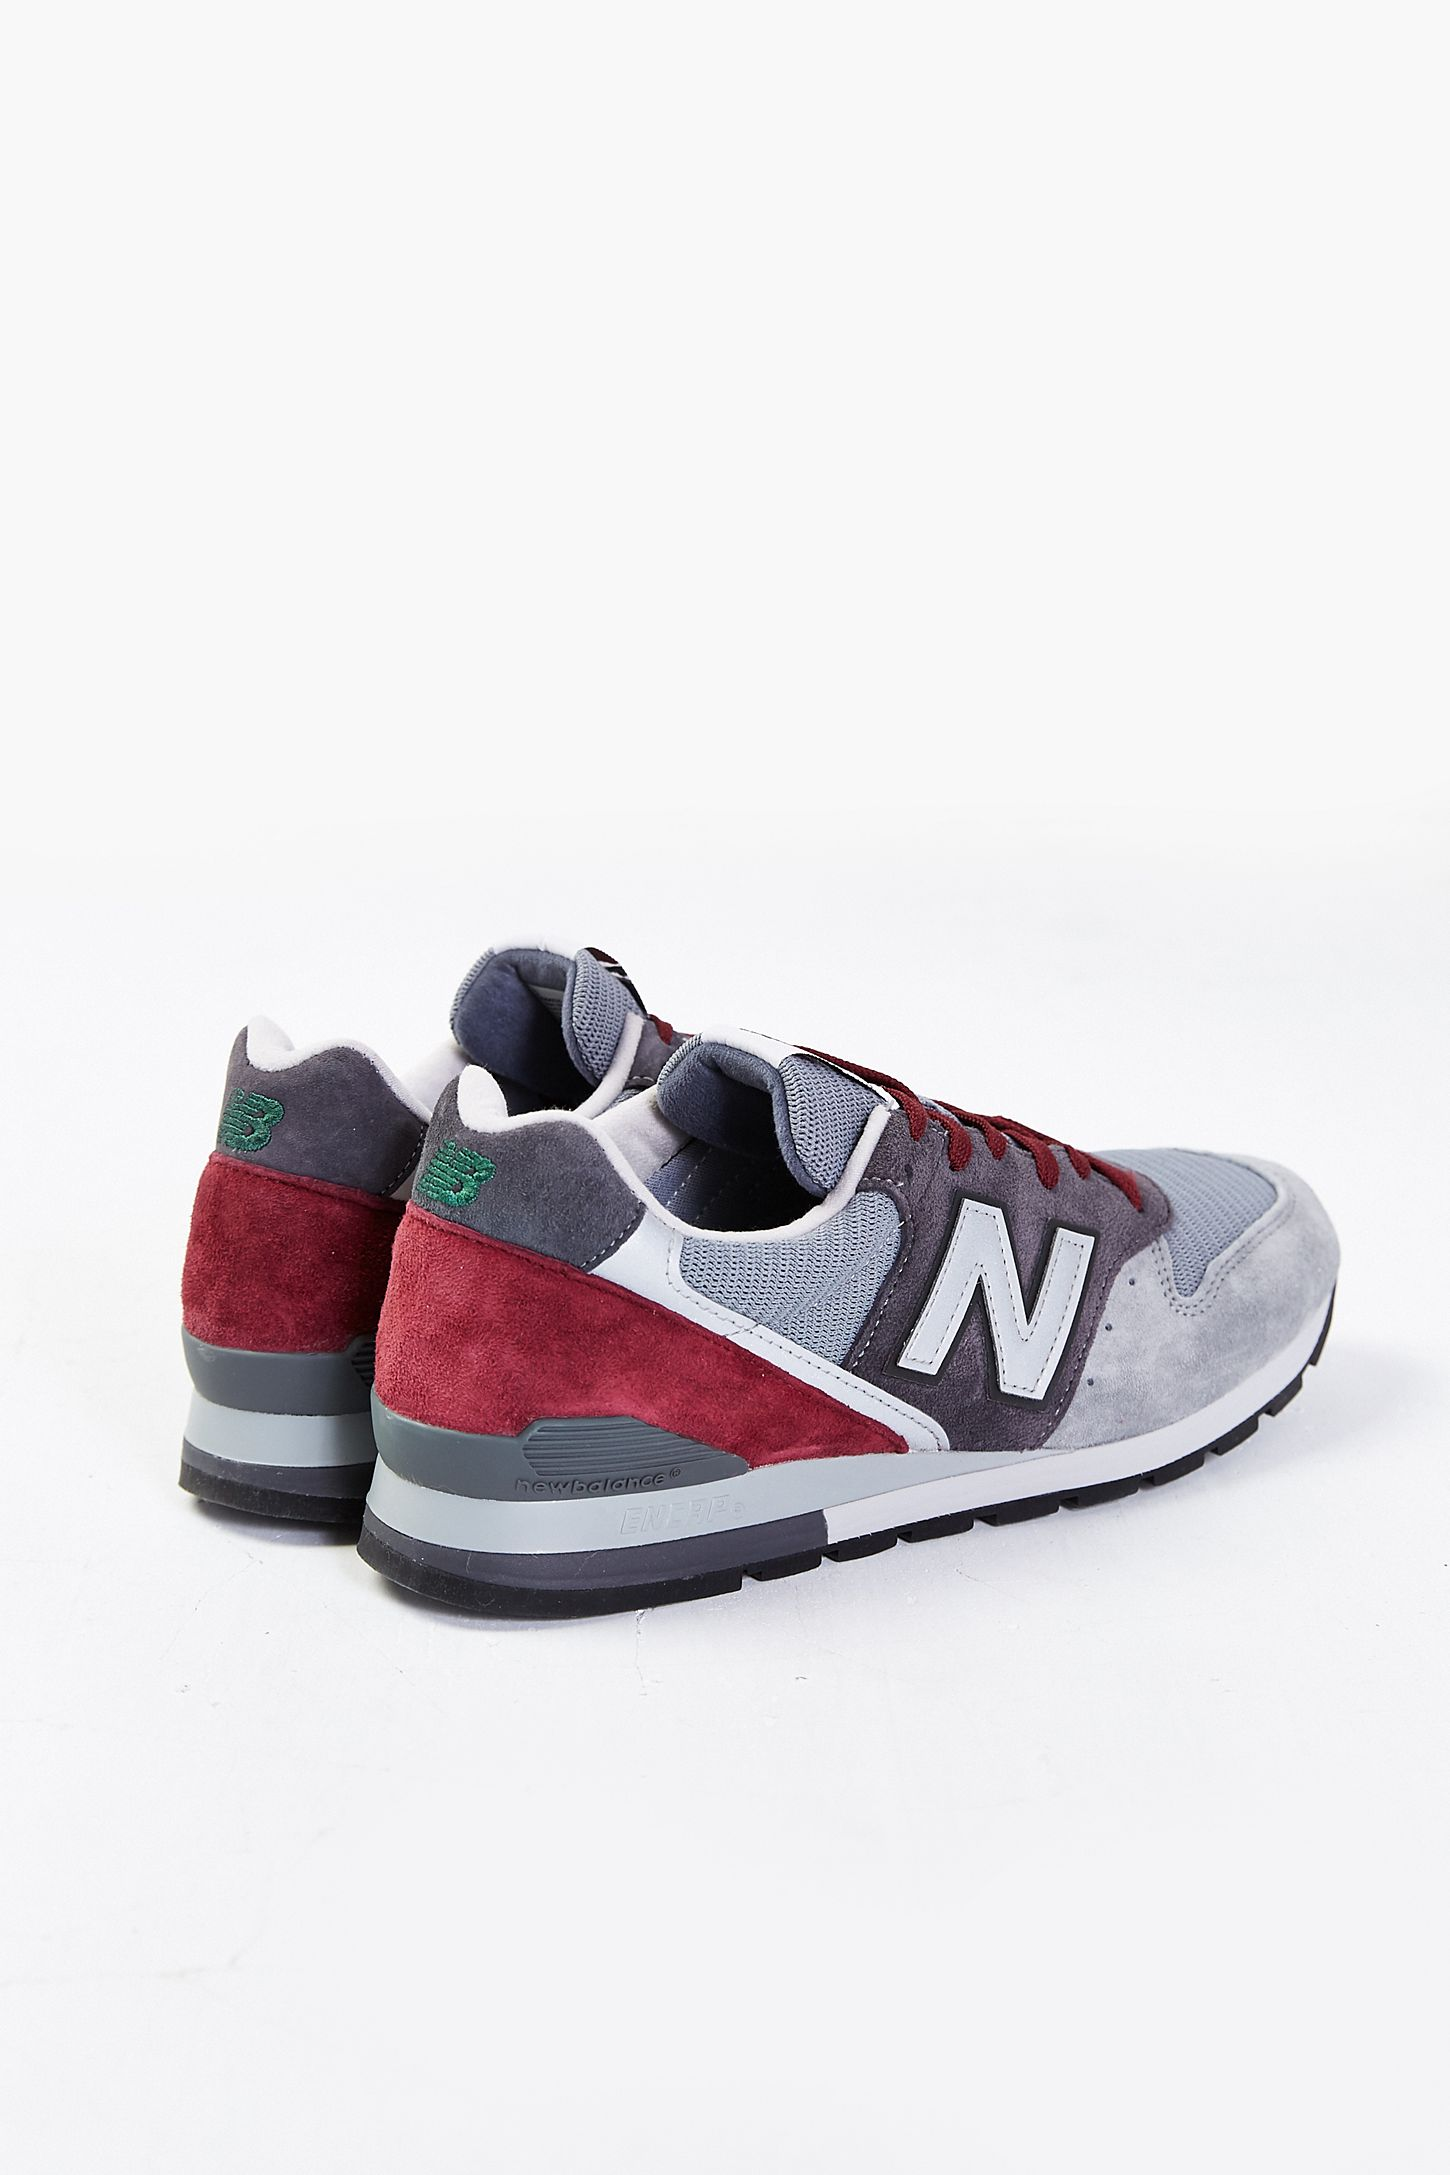 competitive price 2c959 8e656 Slide View: 6: New Balance 996 Made In USA Connoisseur Painters Running  Sneaker